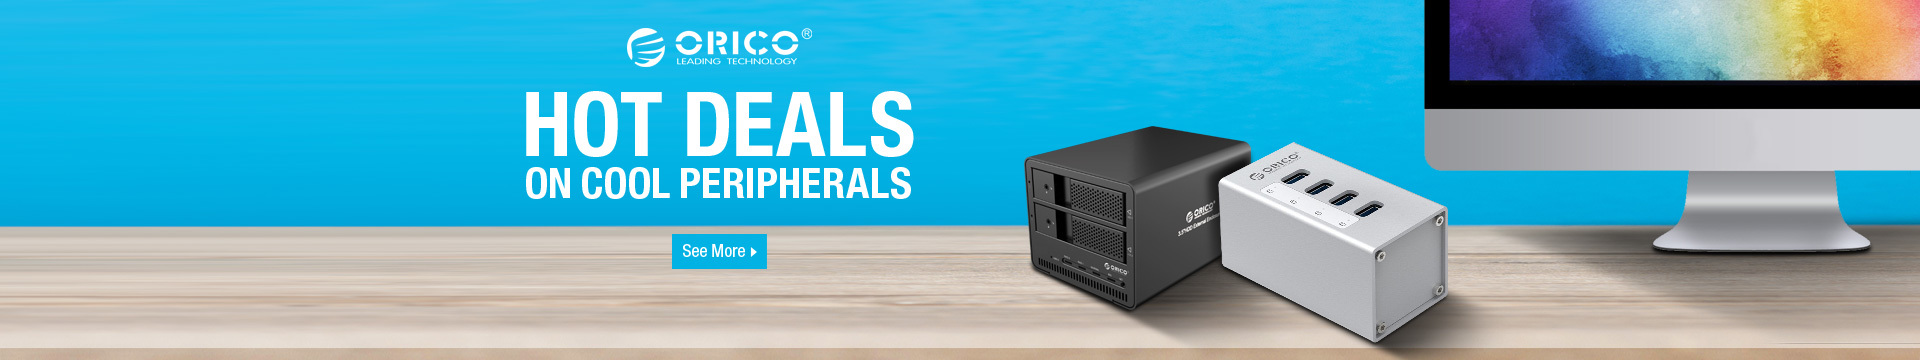 Hot deals on cool peripherals